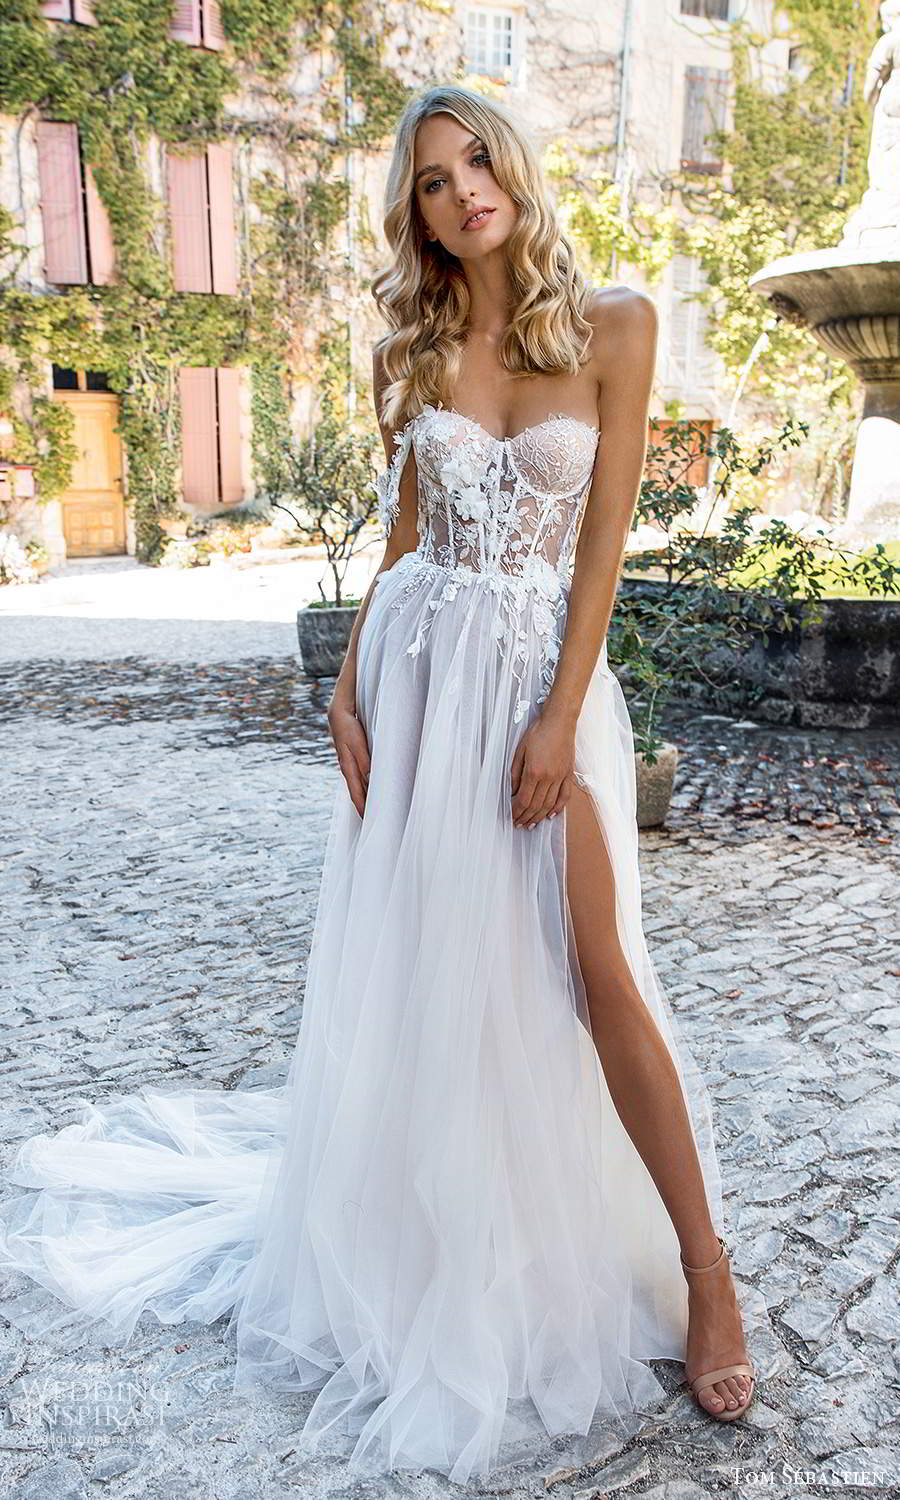 tom sebastien 2021 bridal provence one shoulder off shoulder swag strap sweetheart neckline heavily embellished bodice clean skirt a line ball gown wedding dress chapel train slit skirt (7) mv